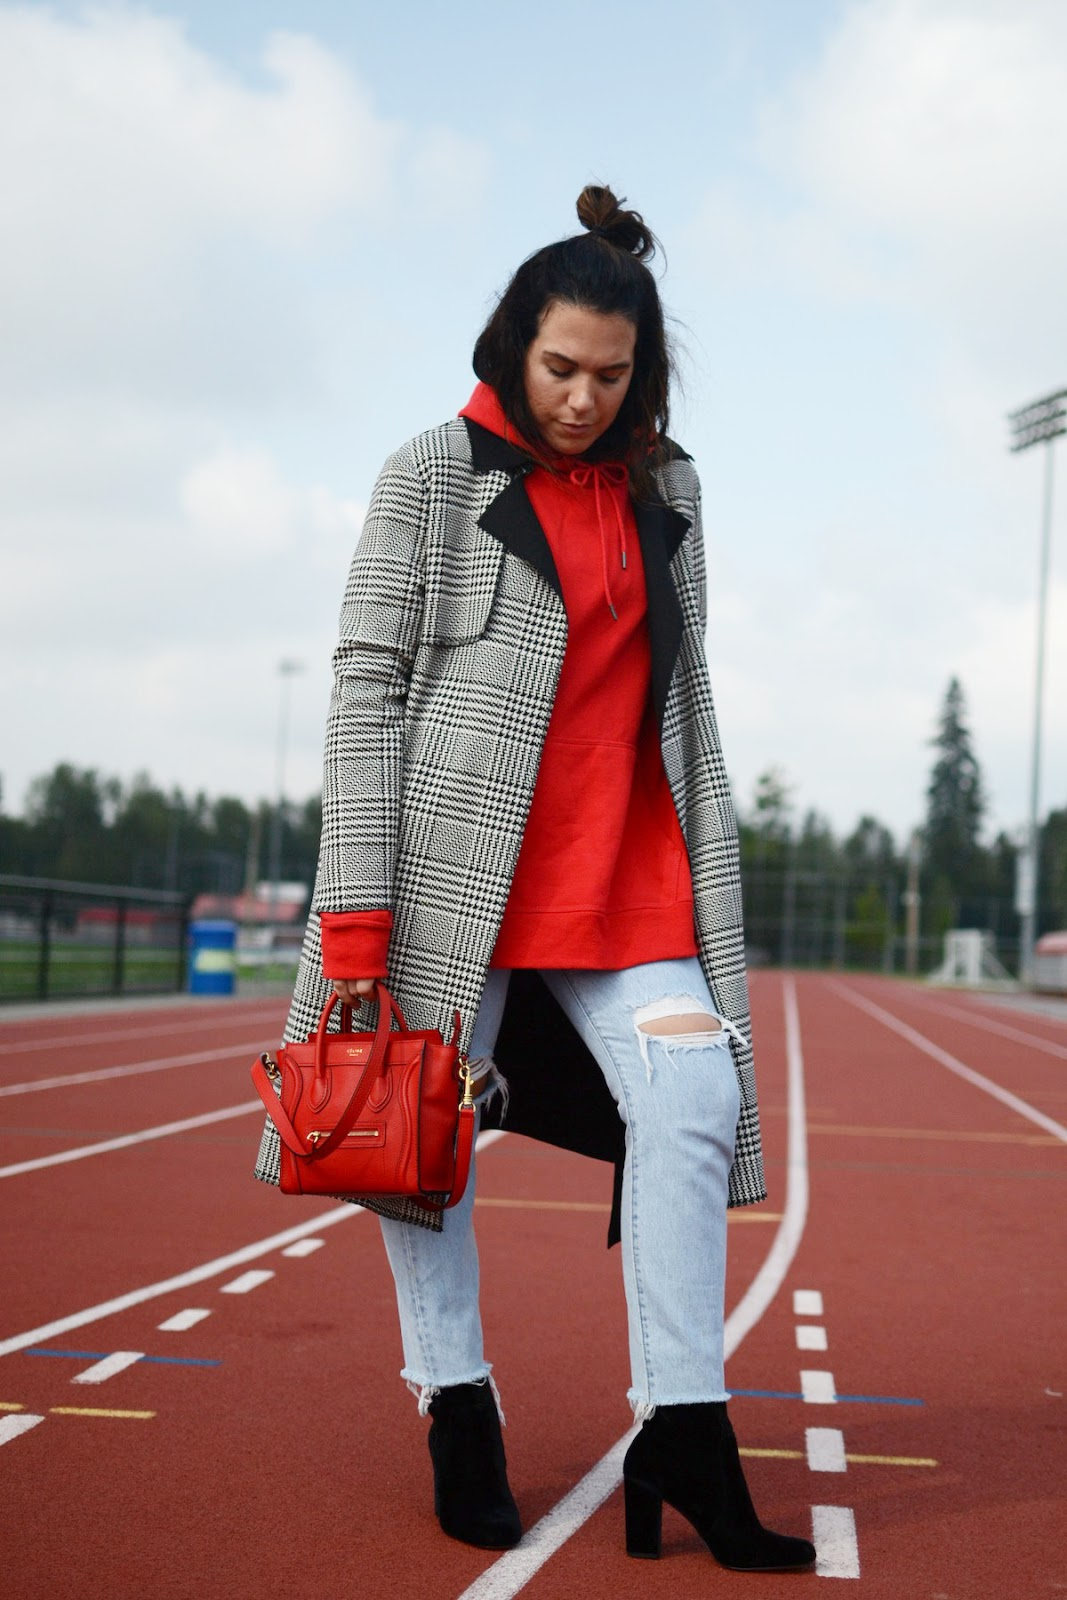 Champion hoodie Le Chateau plaid coat trench coat outfit Lord and Taylor 424 fifth velvet boots red celine nano bag aleesha harris vancouver blogger